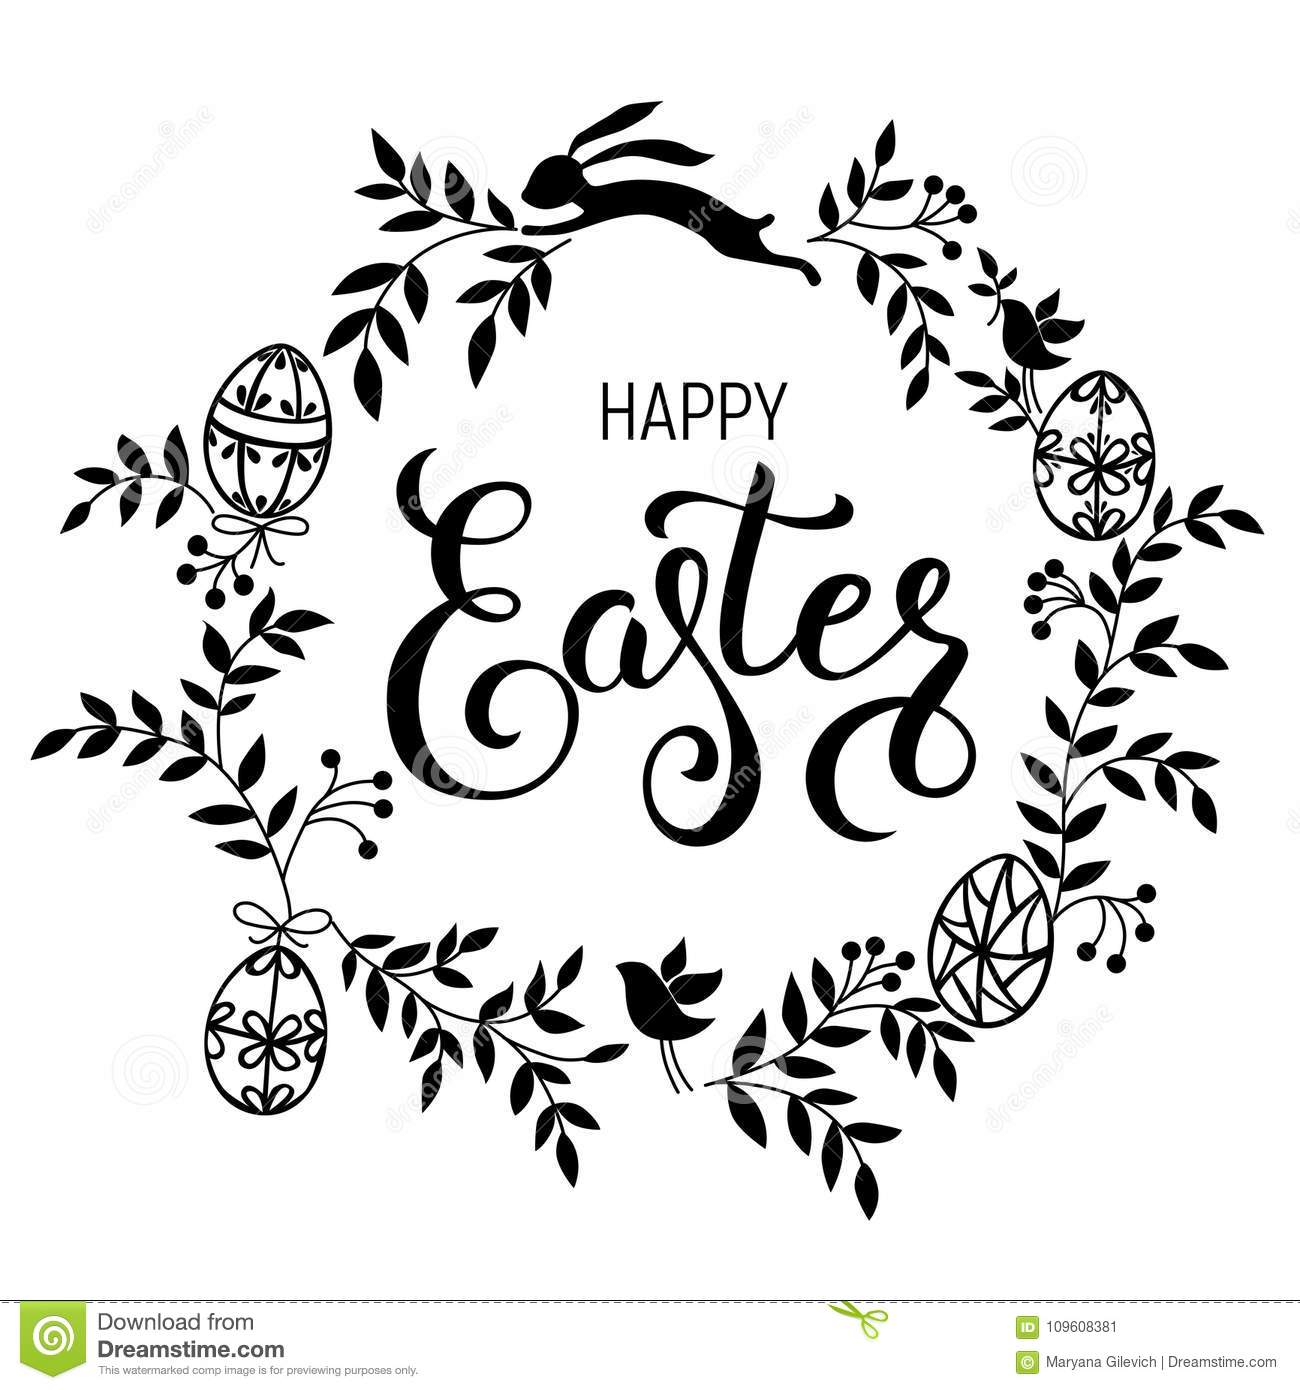 Happy Easter Handwritten Calligraphic Vector Illustration